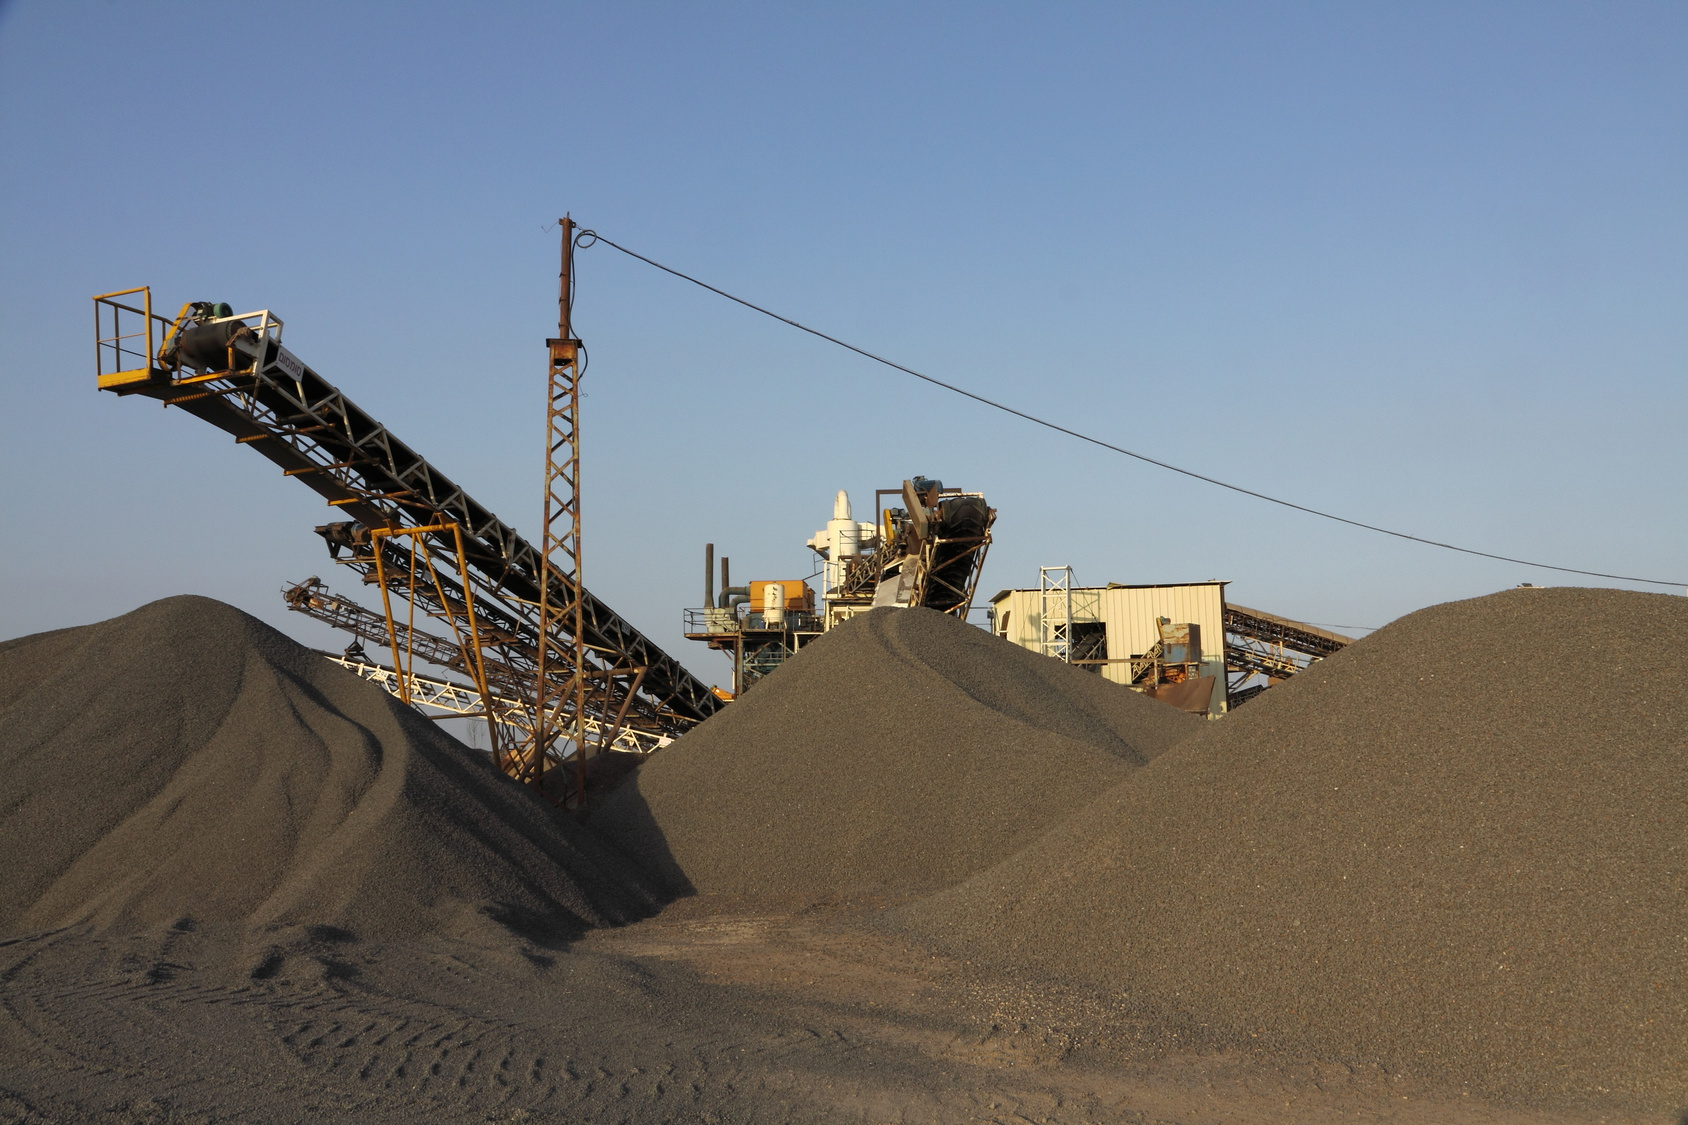 conveyor belt in the brown coal mining area of the lower rhine